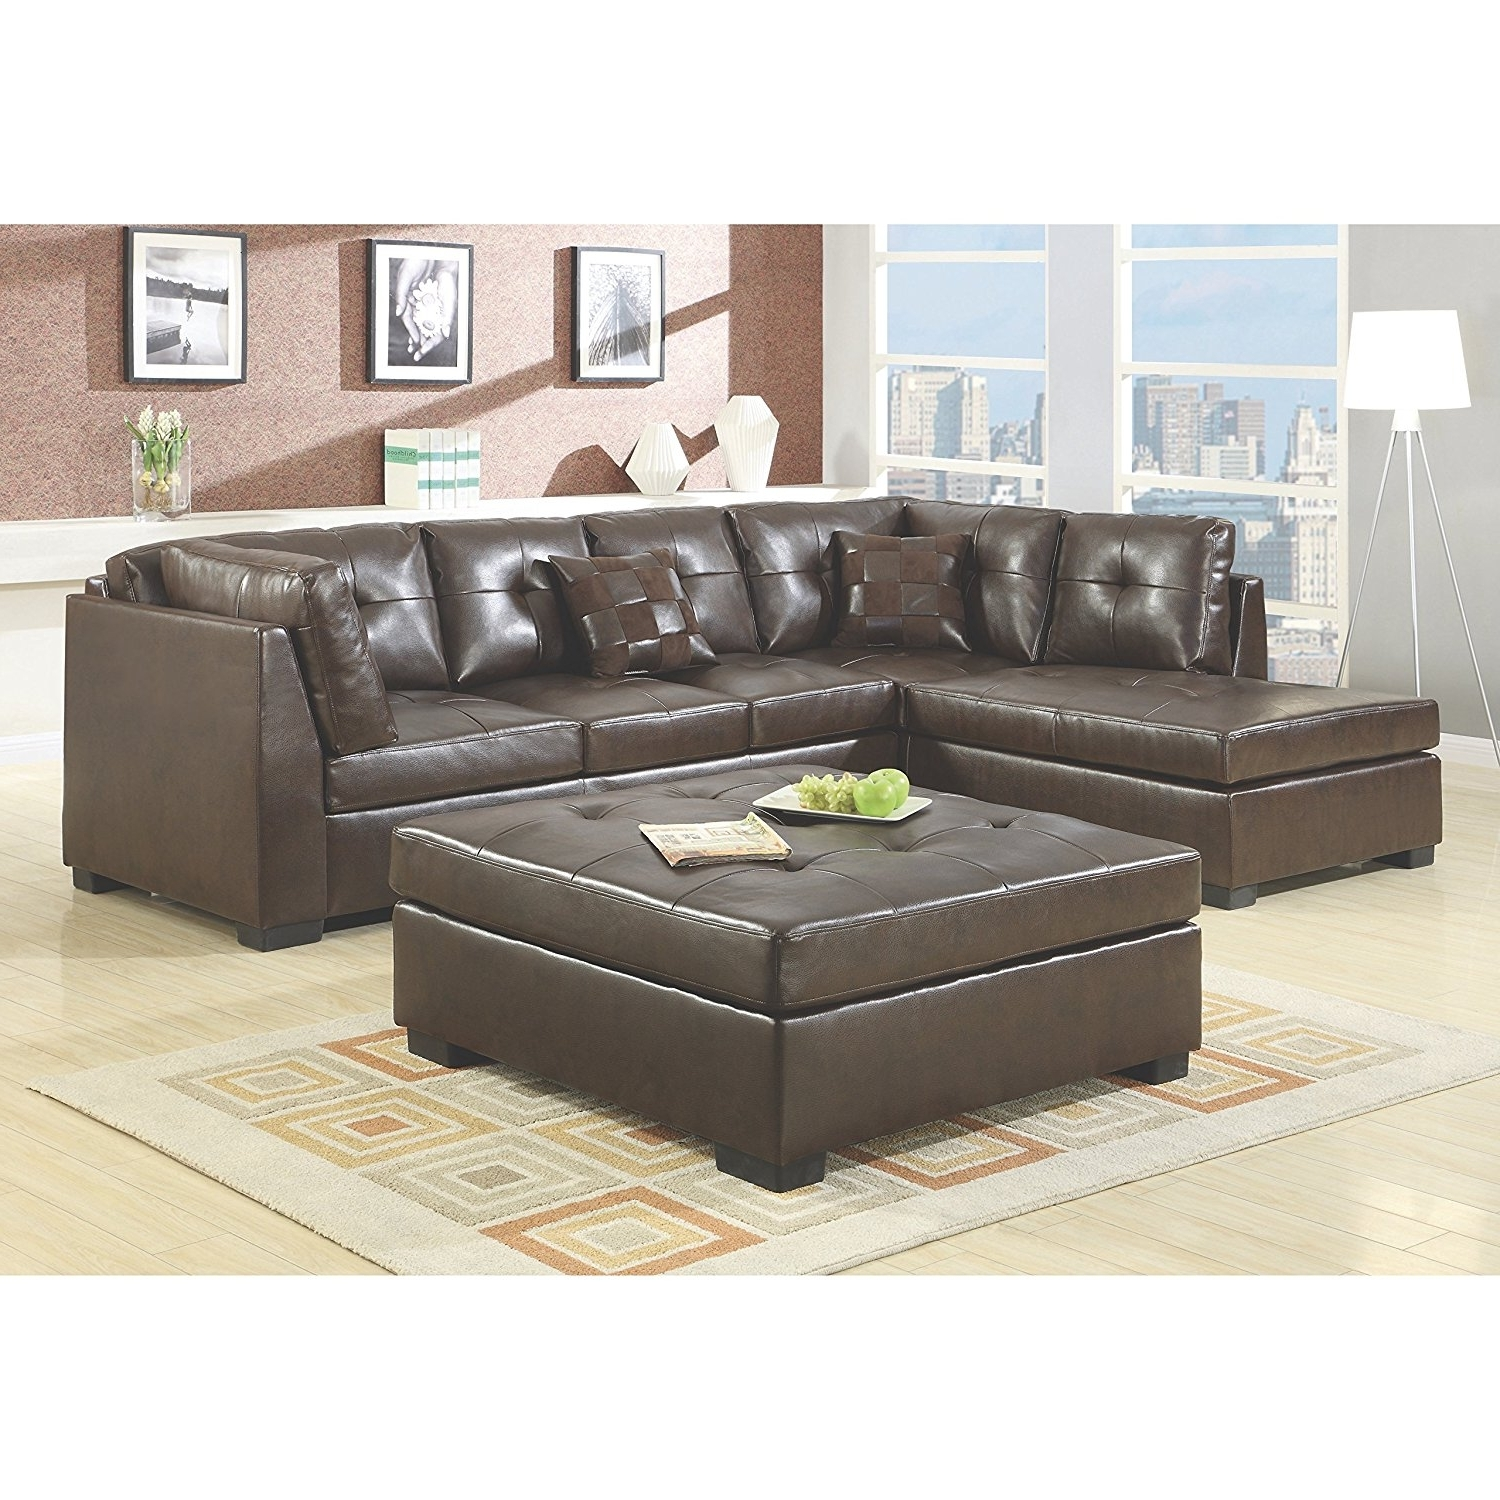 Leather Sectionals With Ottoman Inside Famous Amazon: Coaster Home Furnishings 500686 Casual Sectional Sofa (View 12 of 15)